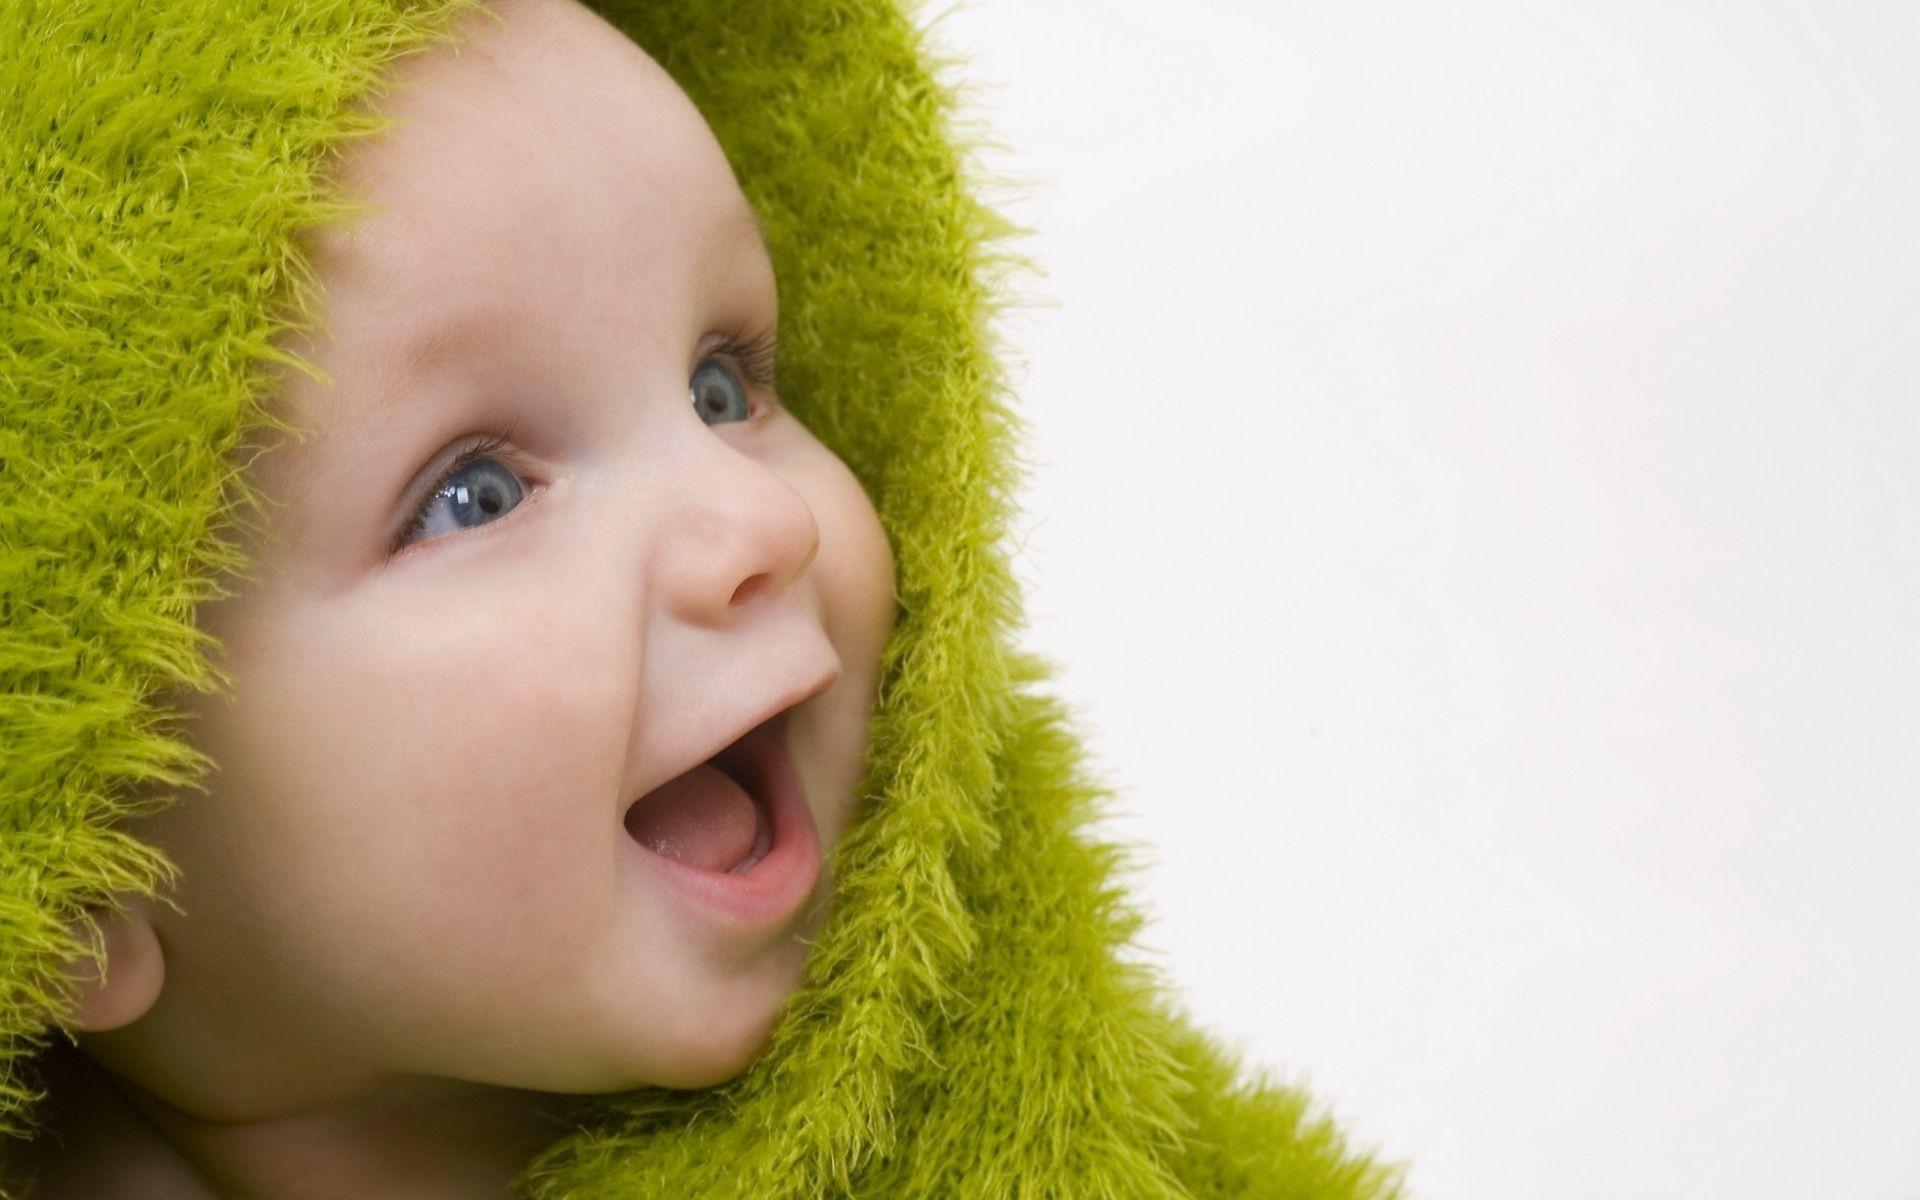 laughing children child little nature cute fun portrait beautiful baby innocence